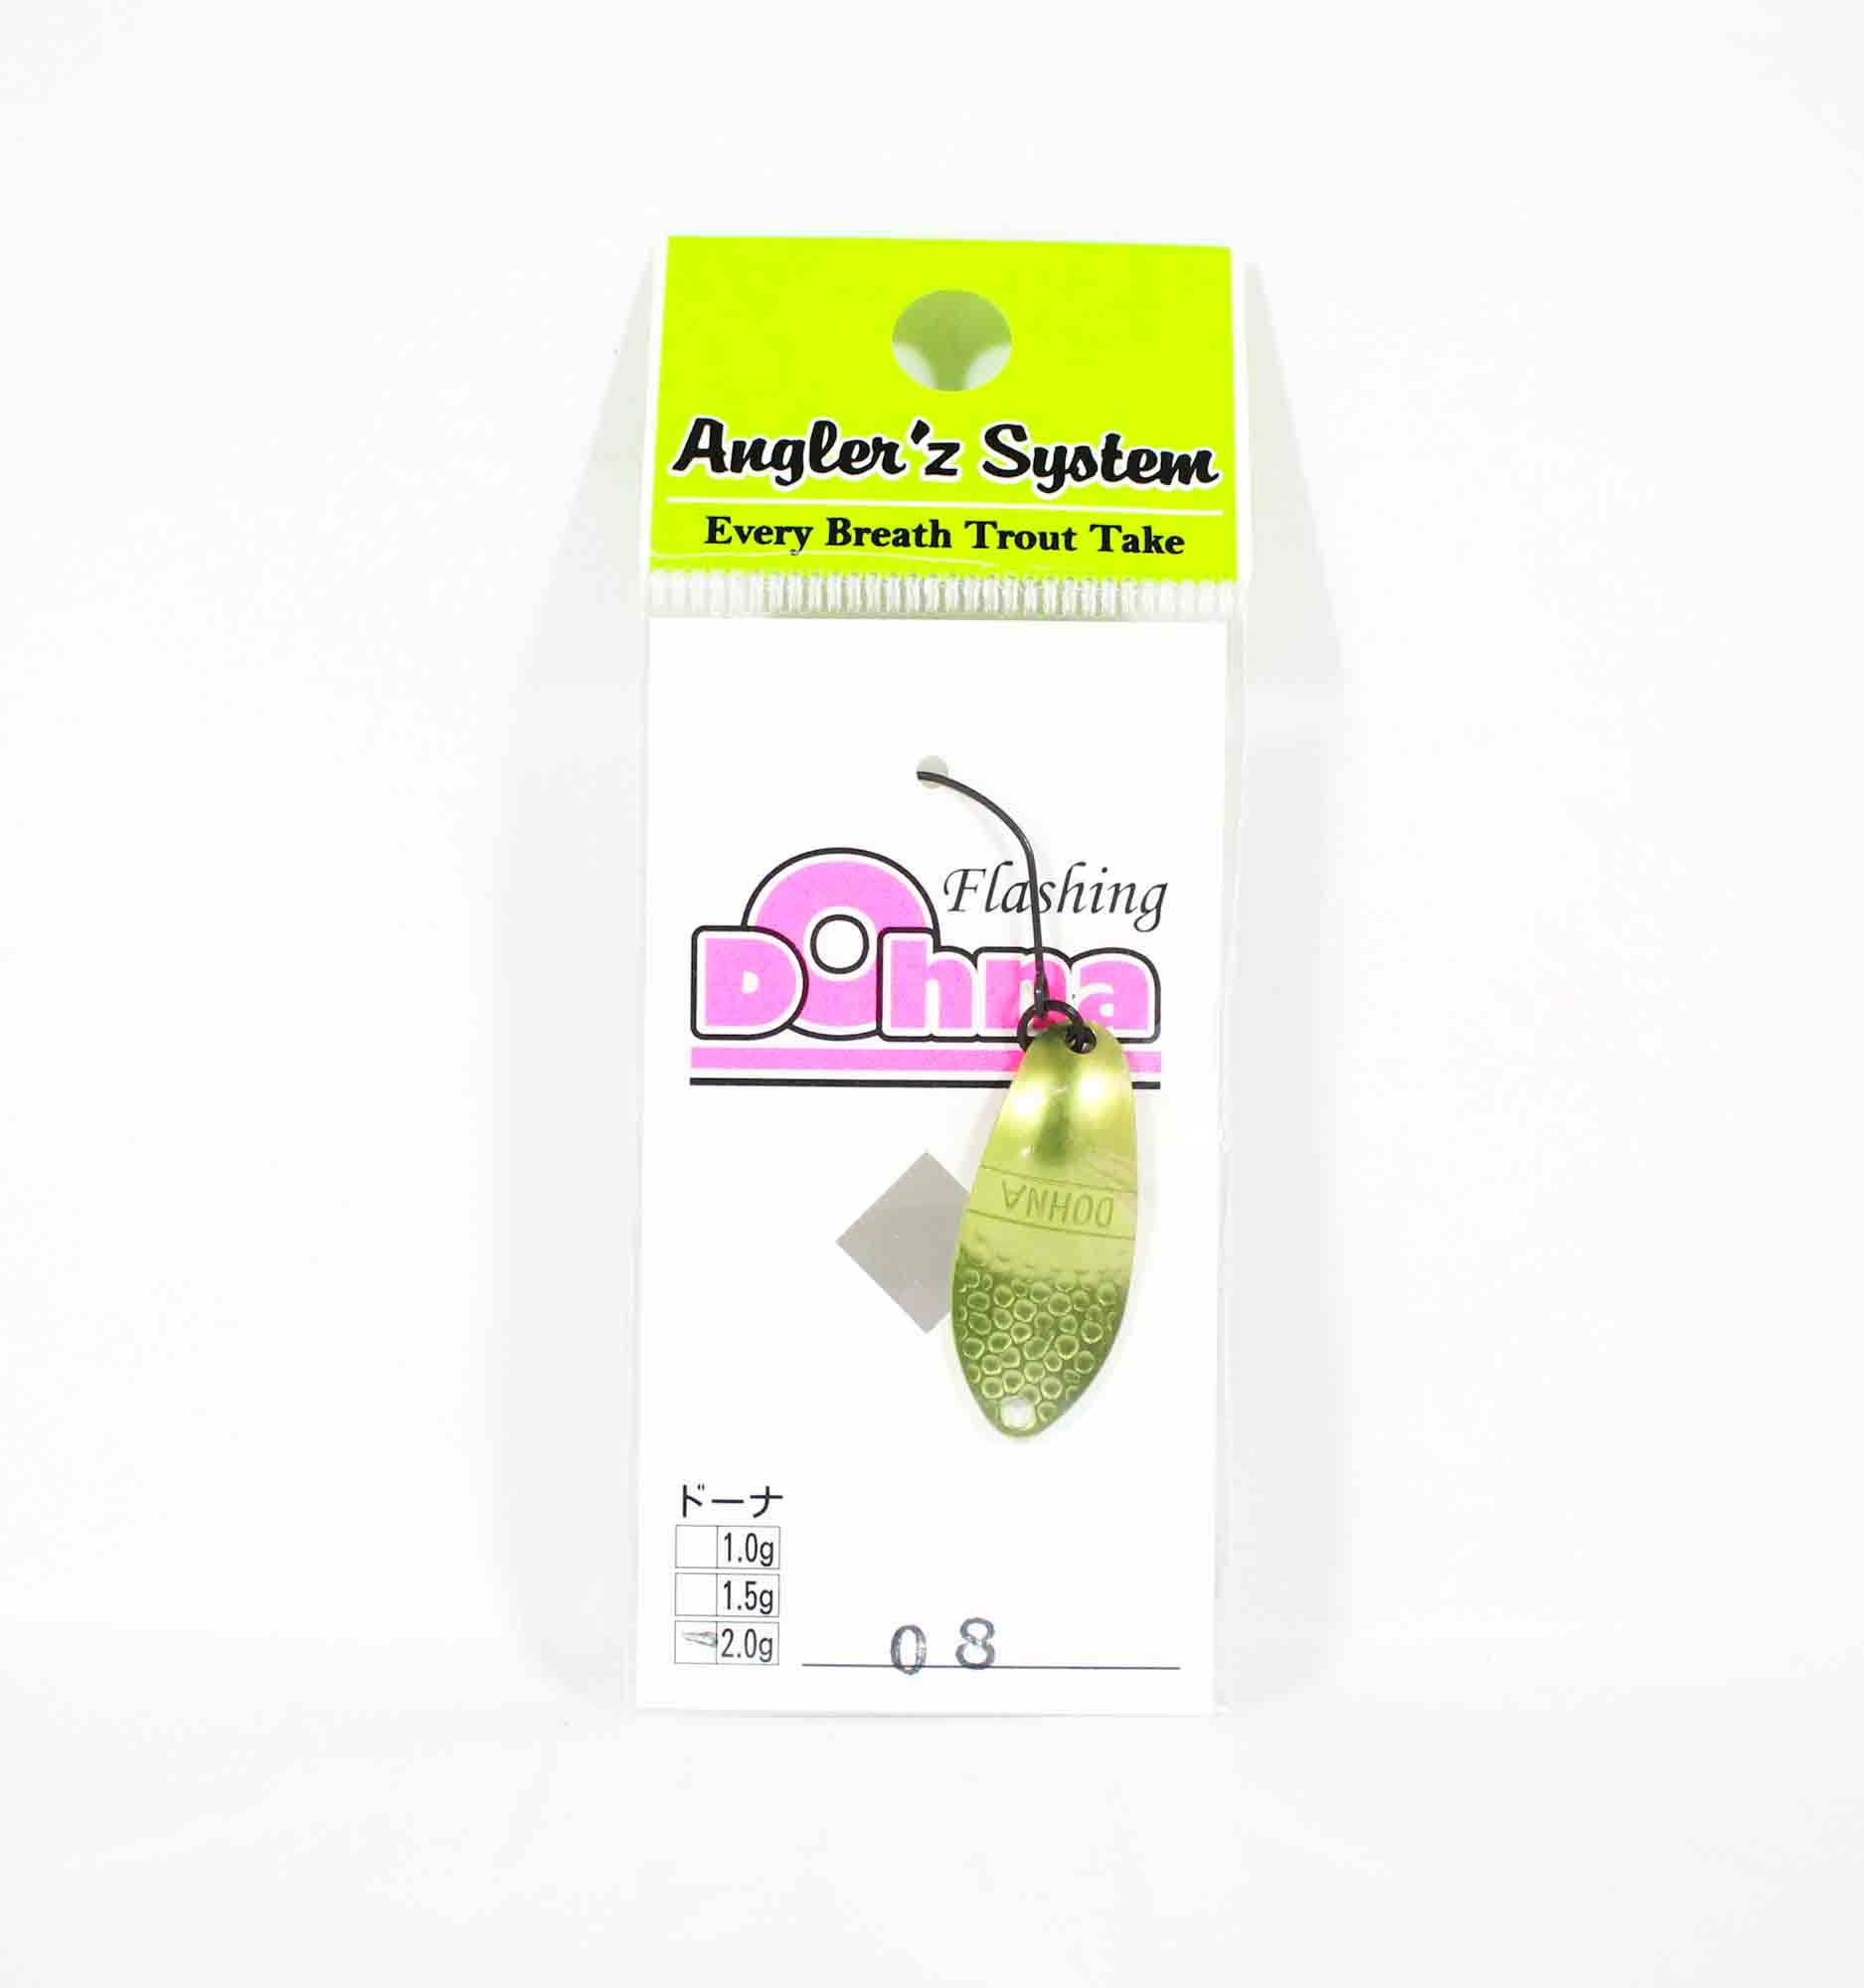 Anglers System Antem Dohna 2.0 grams Spoon Sinking Lure 08 (4527)